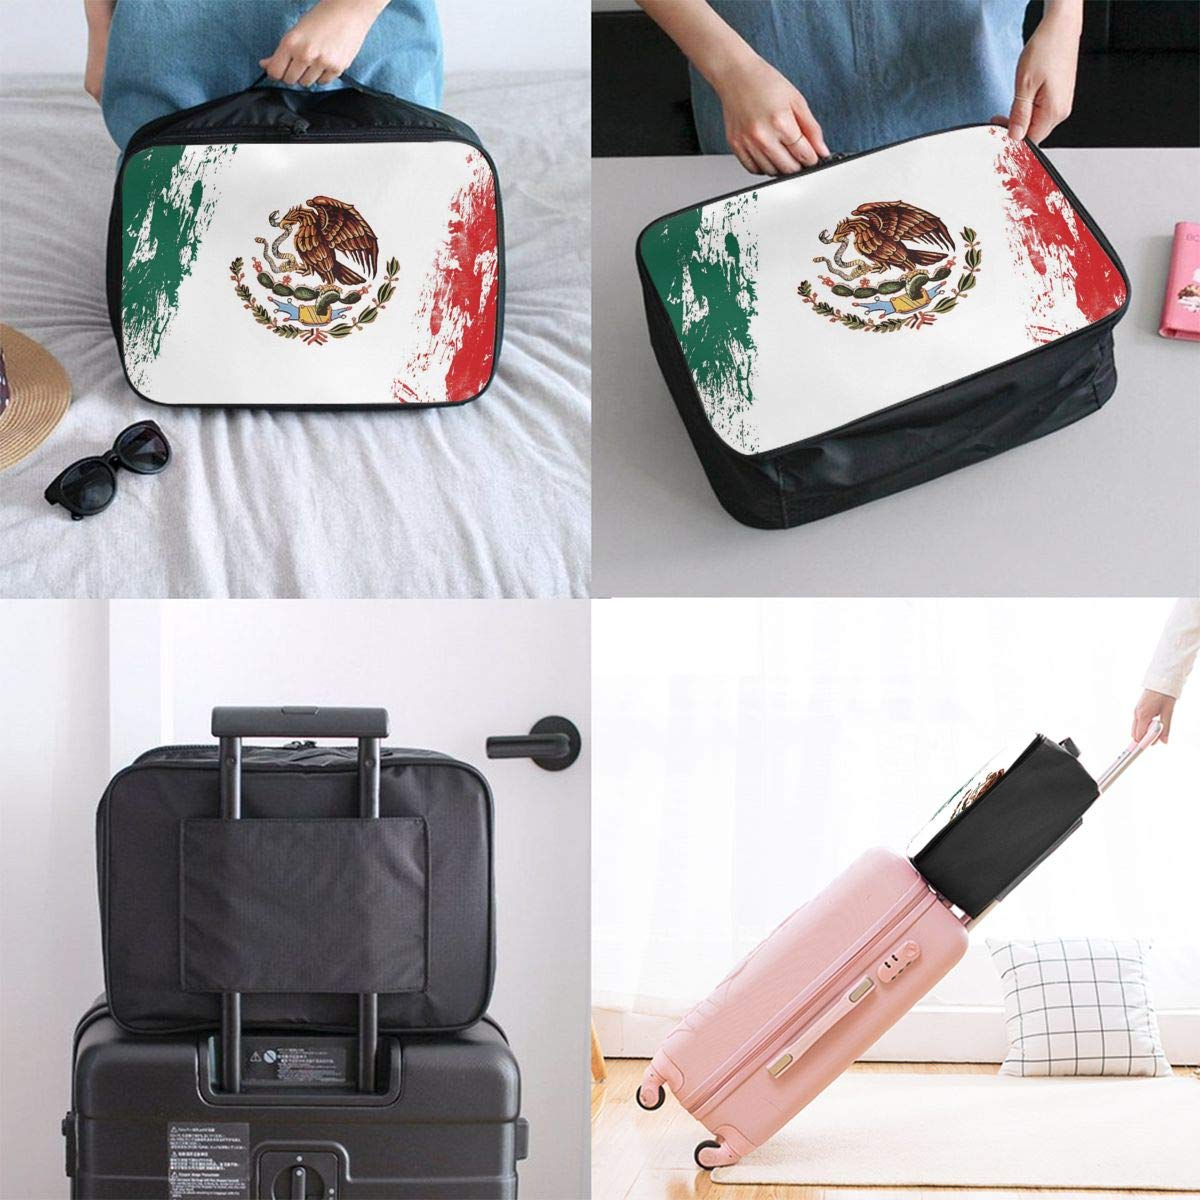 YueLJB Grunge Mexician Ealge Flag Lightweight Large Capacity Portable Luggage Bag Travel Duffel Bag Storage Carry Luggage Duffle Tote Bag